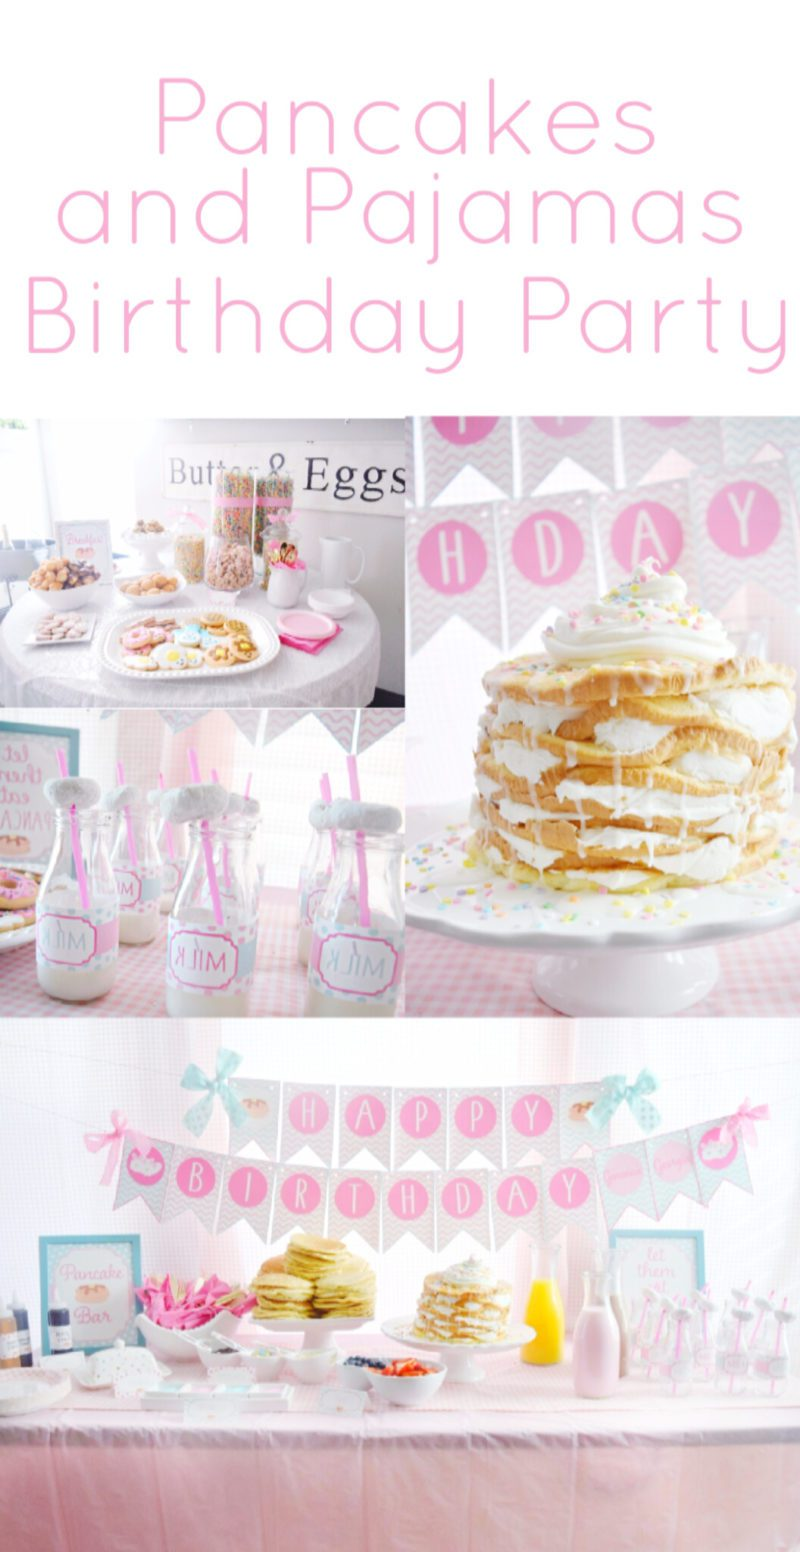 Pancake and pajamas birthday party girls birthday ideas pancake bar breakfast bar pancake and pjs party supplies party decorations birthday pajamas pink gingham party